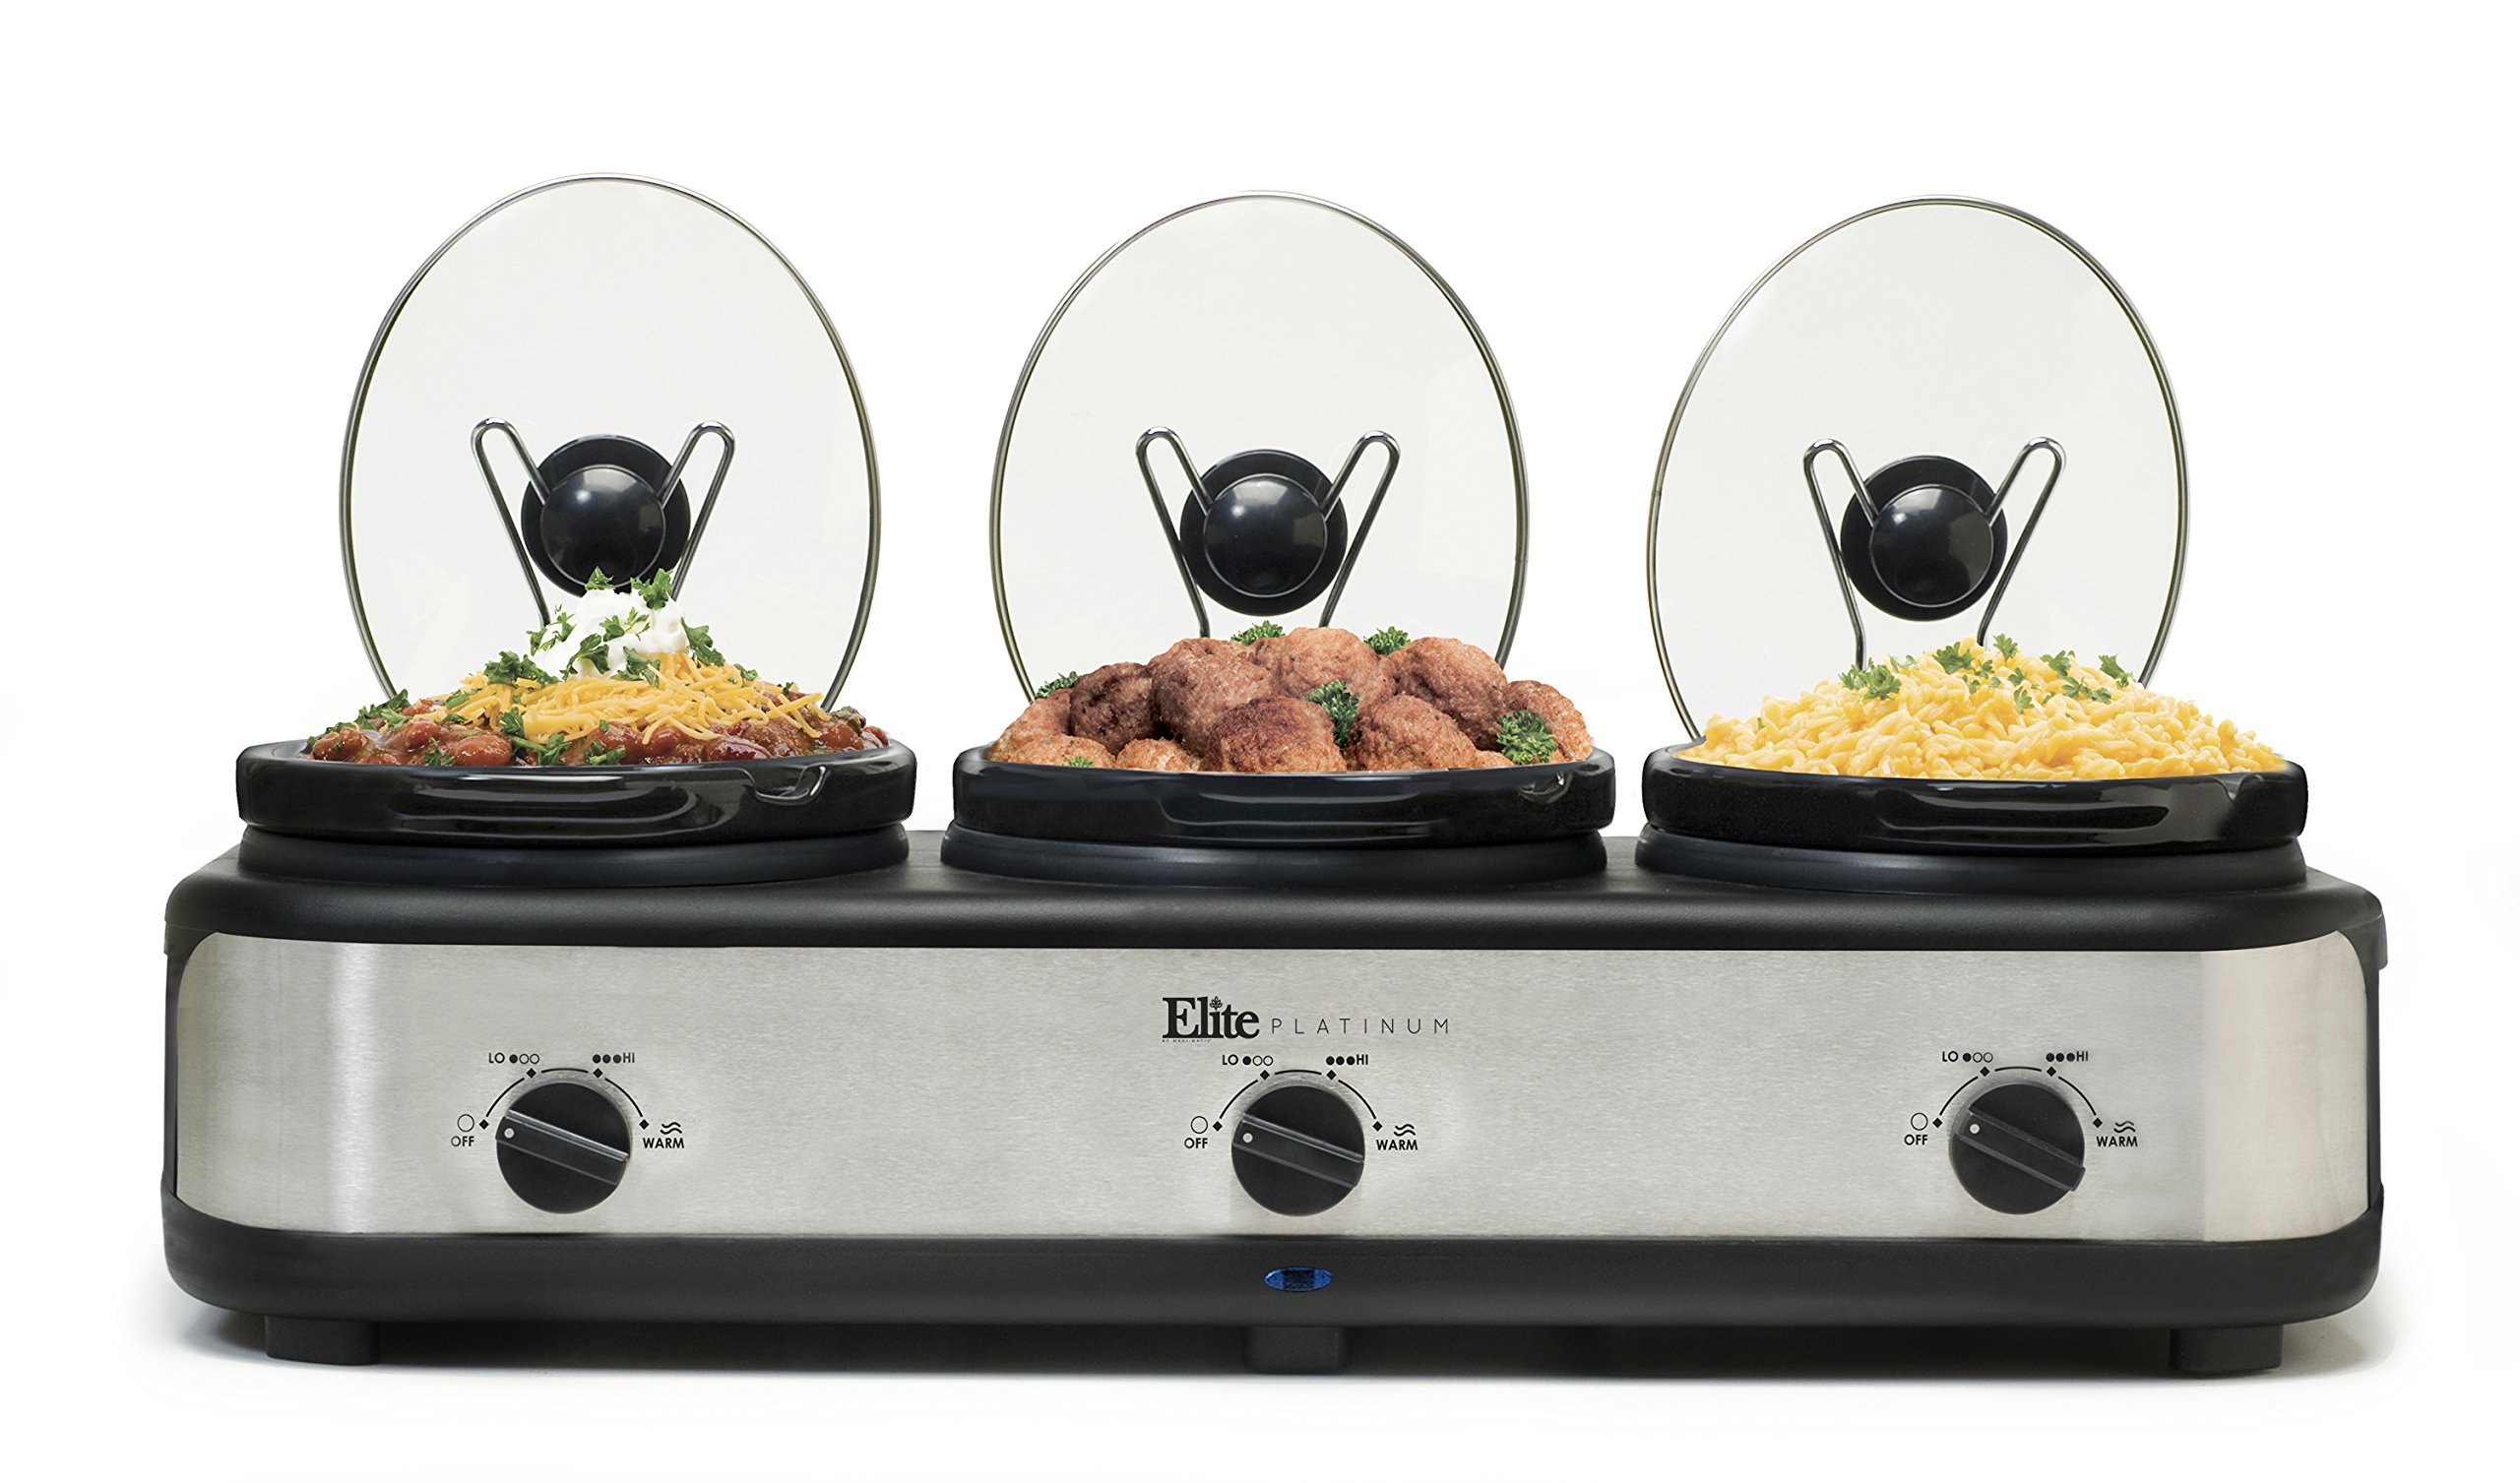 Elite Platinum EWMST-325 Maxi-Matic Triple Slow Cooker Buffet with Lid Rests, Black/Silver